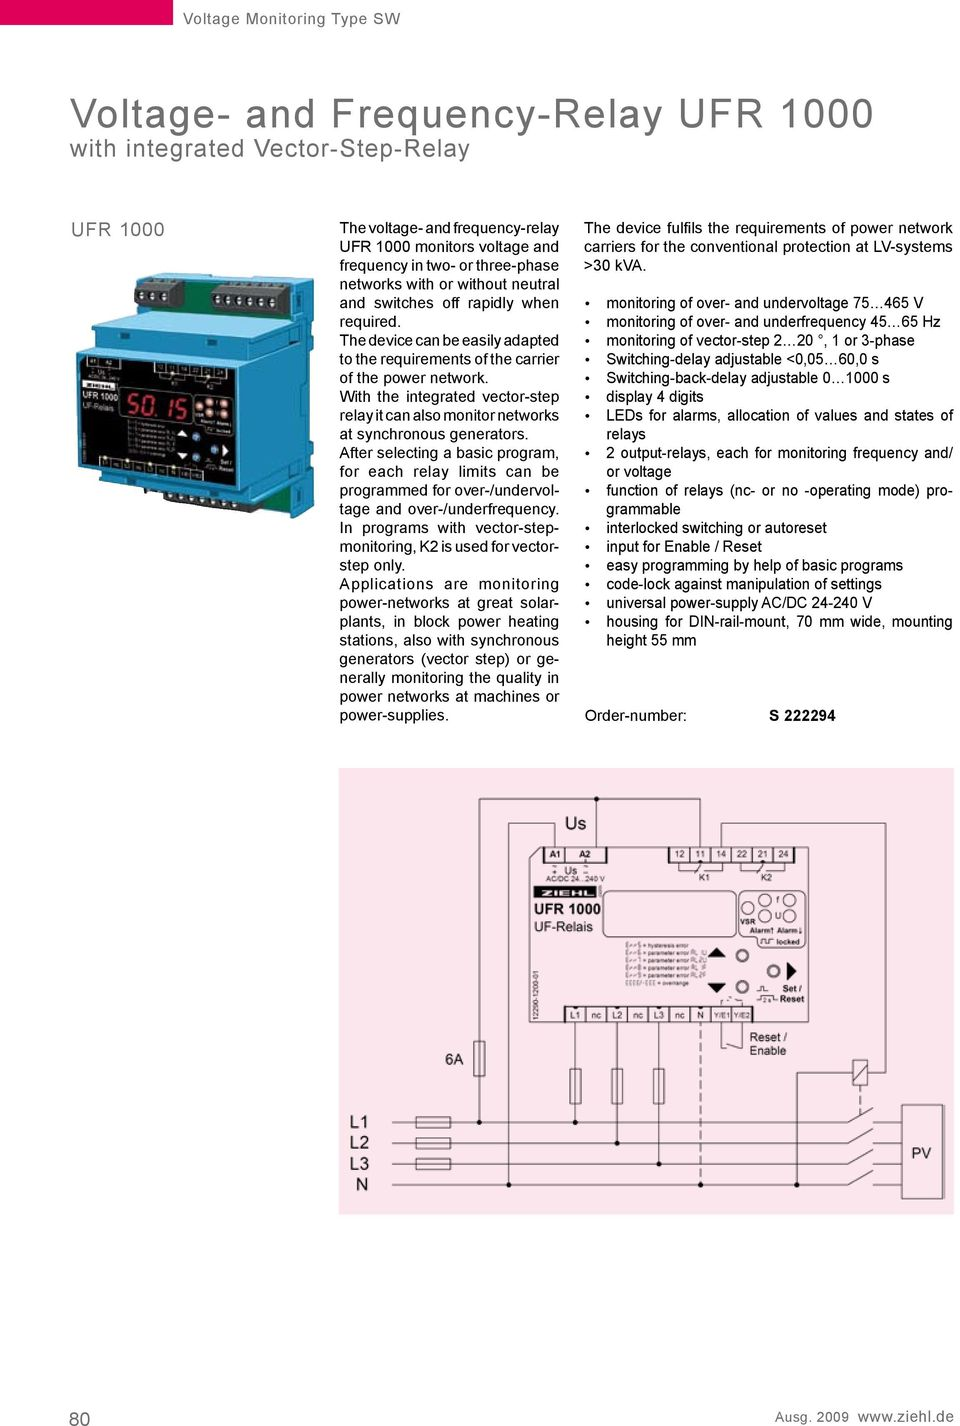 With the integrated vector-step relay it can also monitor networks at synchronous generators.